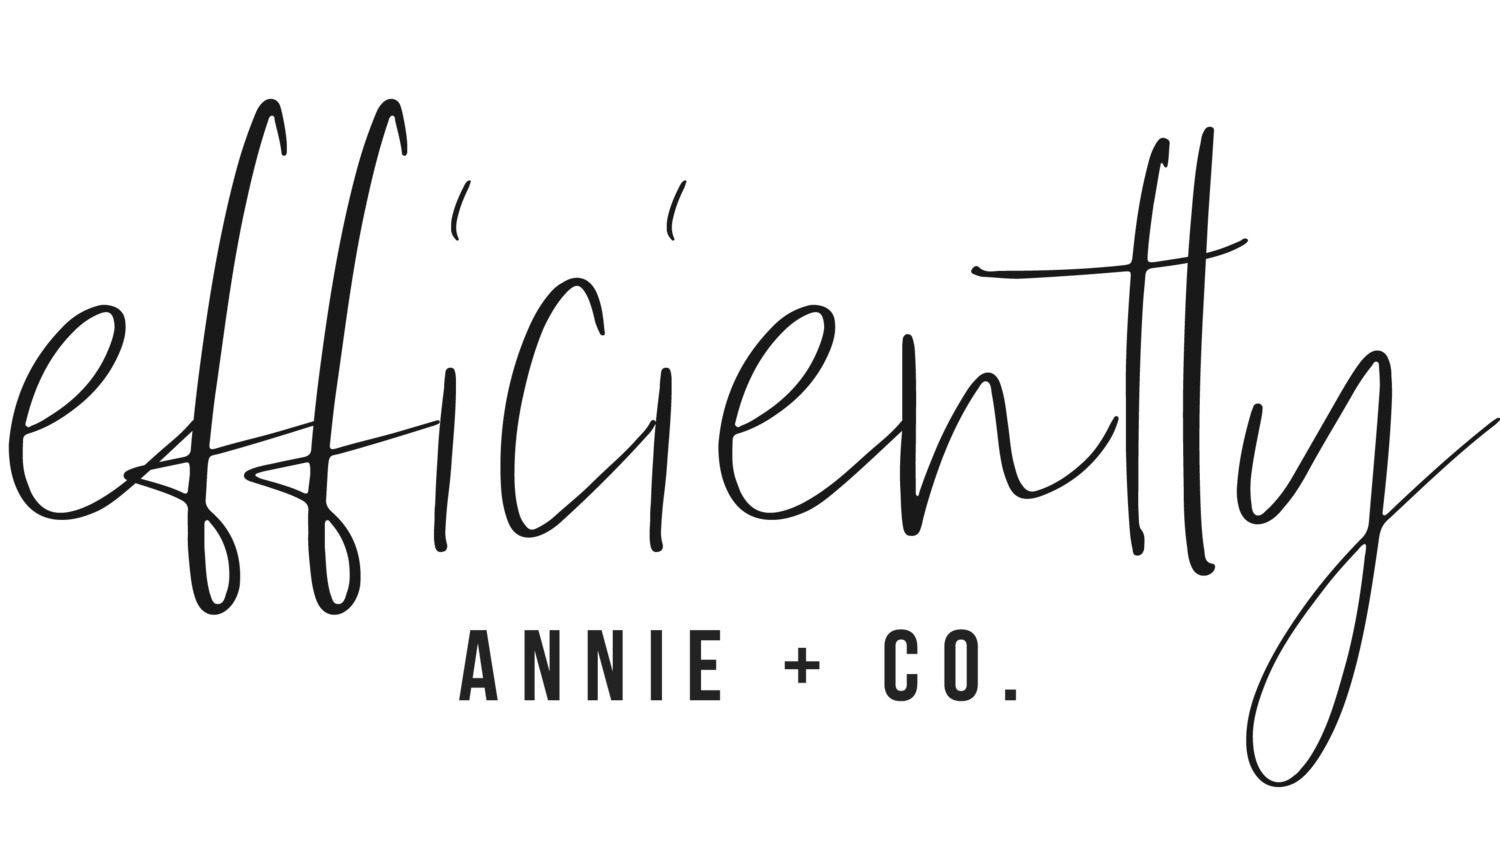 Efficiently Annie LLC